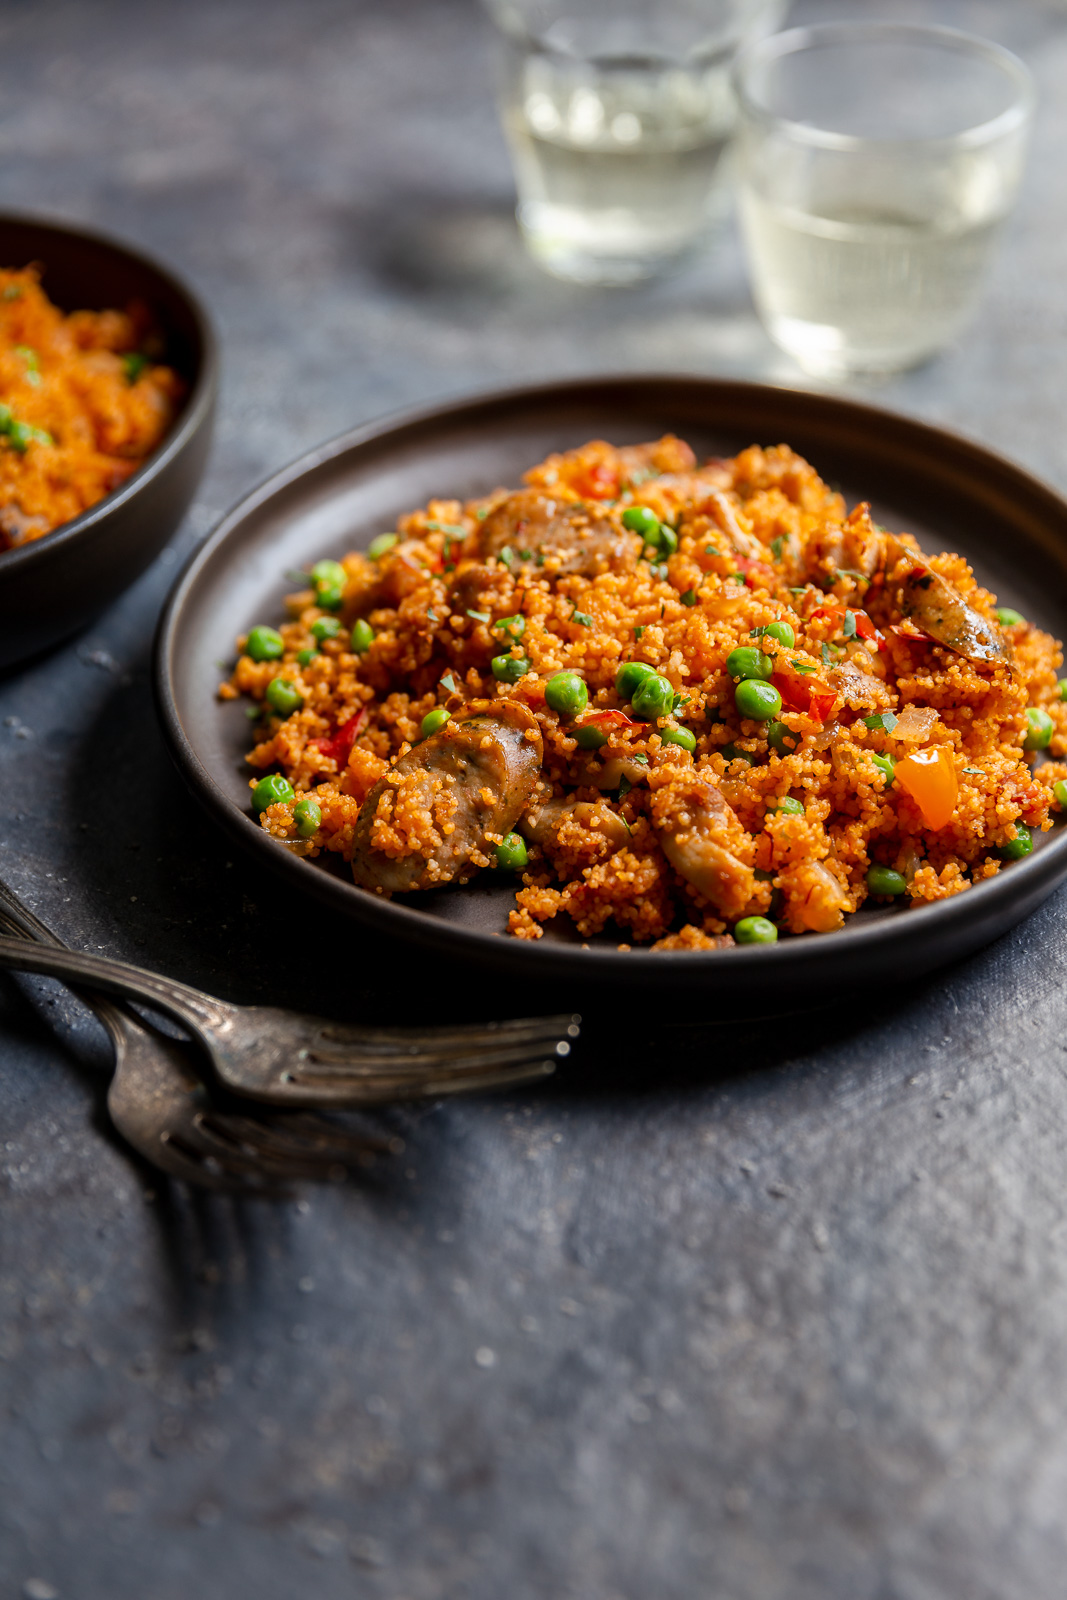 Chicken and sausage couscous paella  on a brown plate with glasses of white wine.